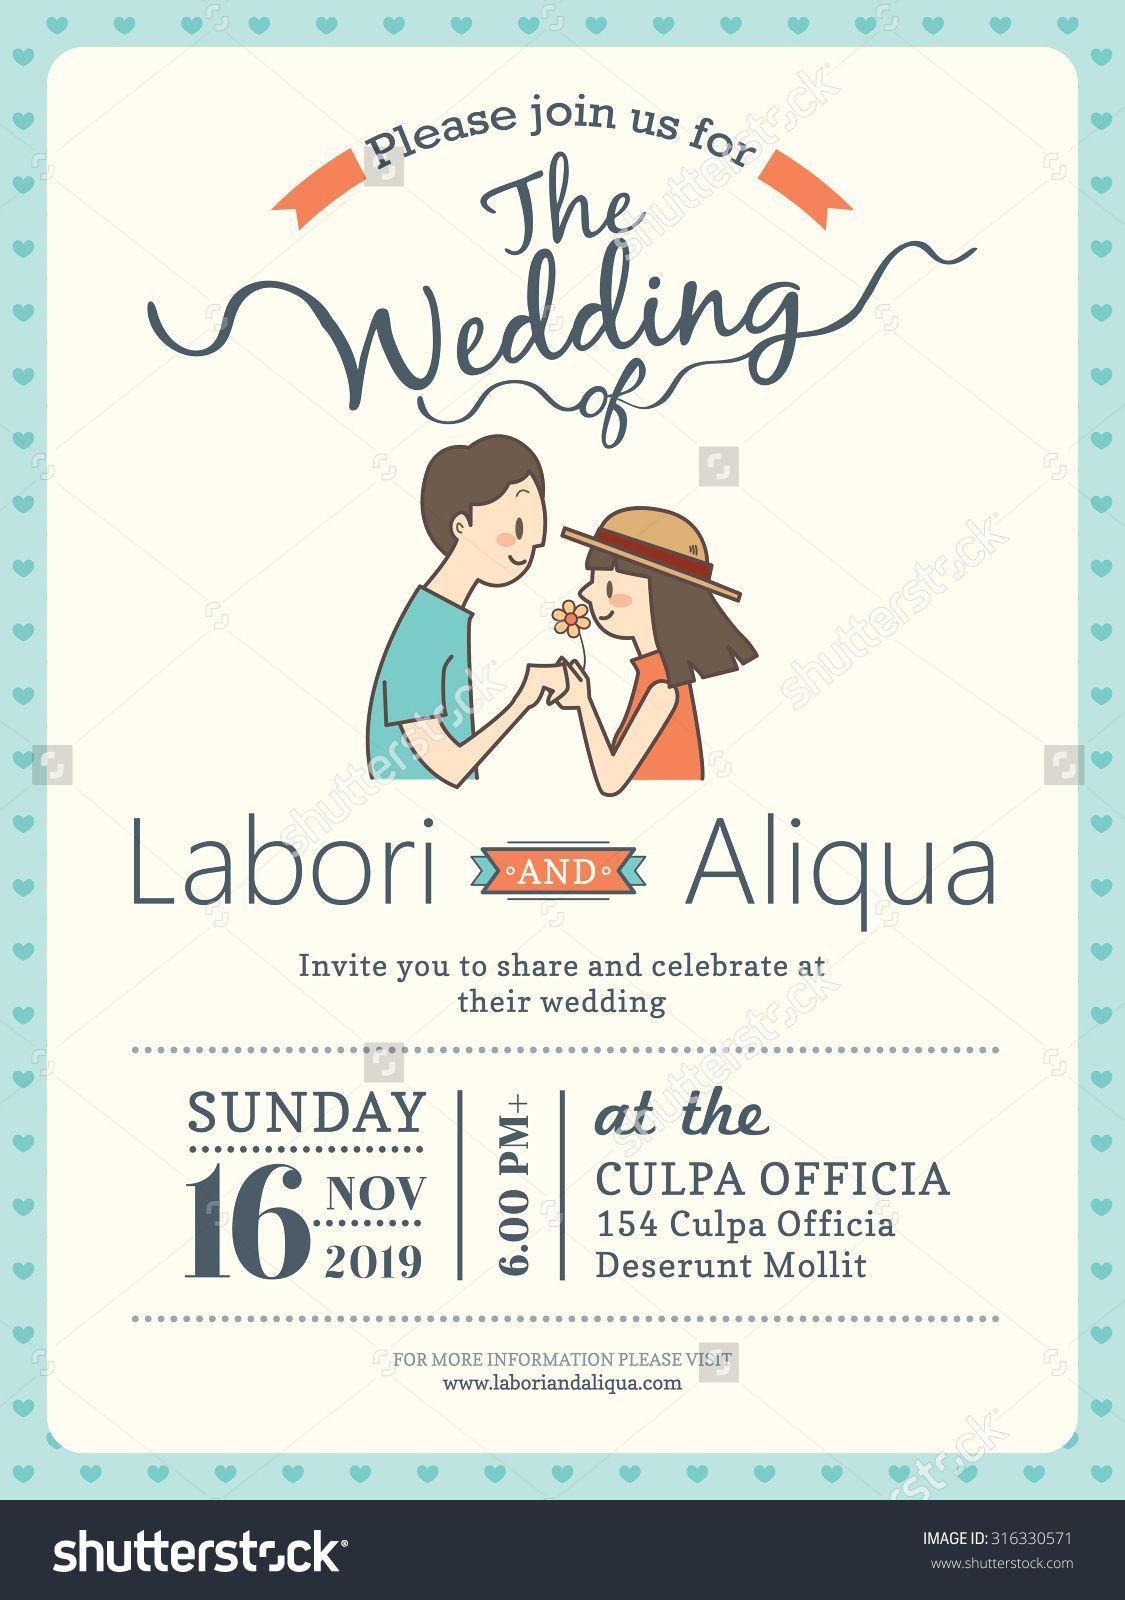 Cute Cartoon Invitations Cartoon wedding invitations